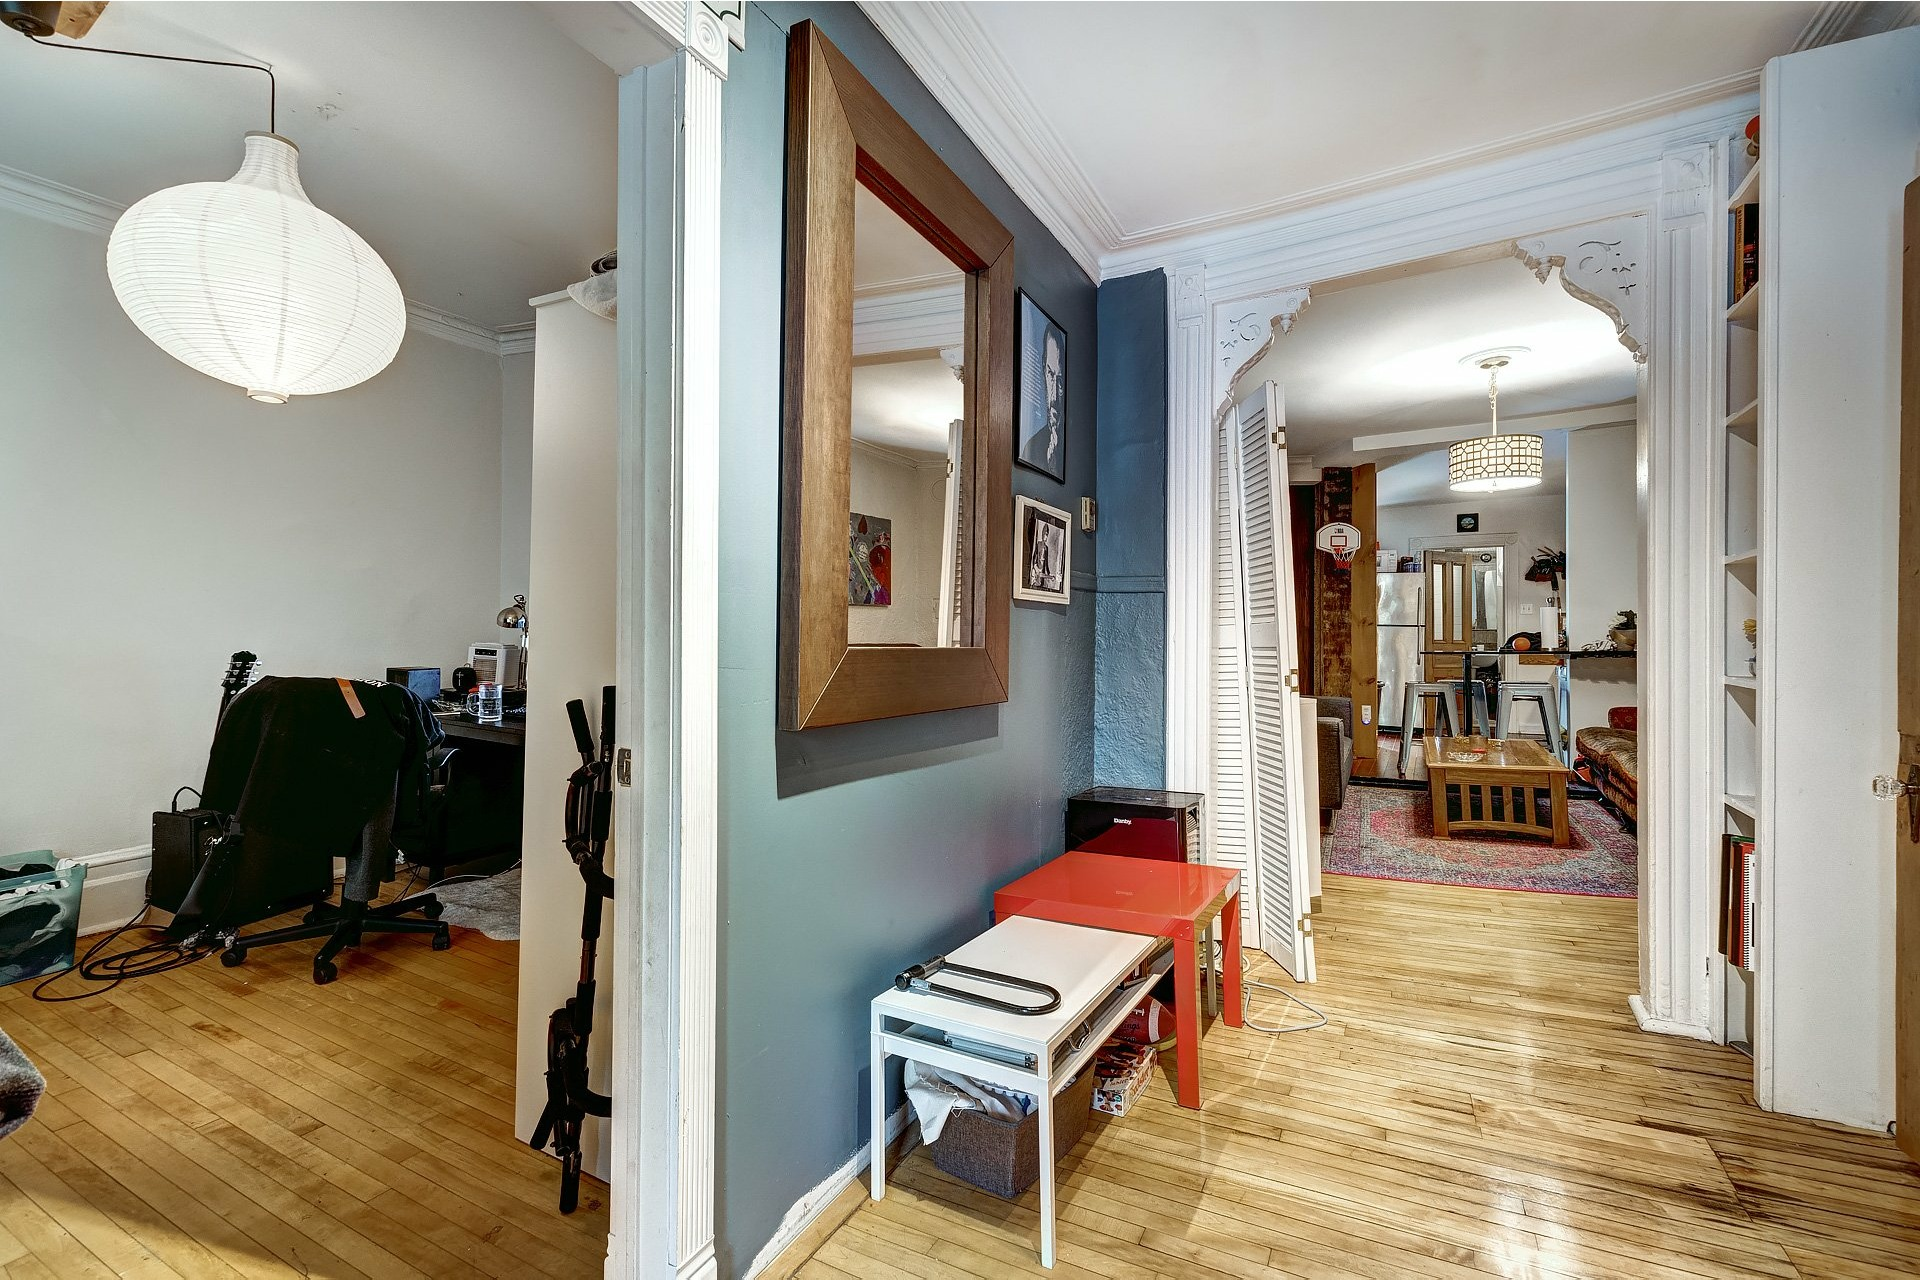 image 2 - Triplex For sale Le Plateau-Mont-Royal Montréal  - 4 rooms